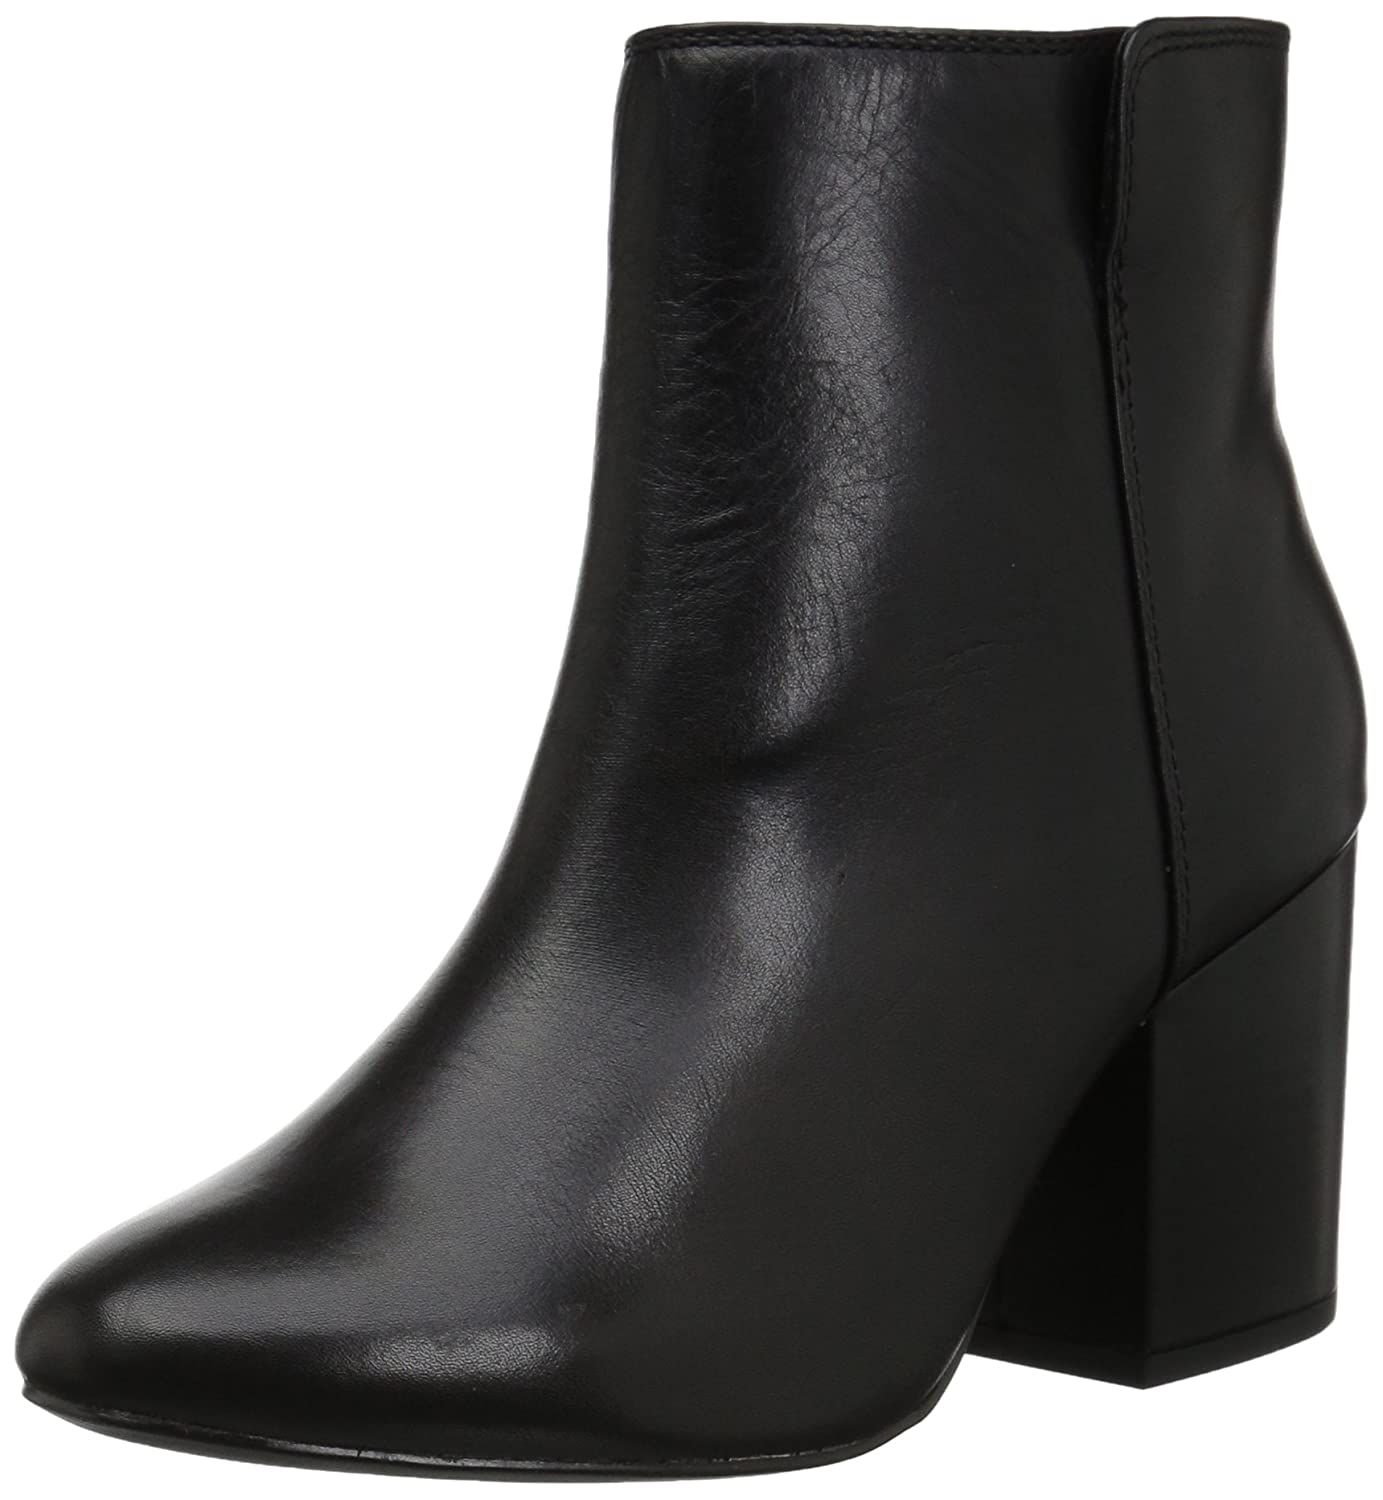 ALDO Women's Masen Ankle Bootie B072DZ29SR 8 B(M) US|Black Leather